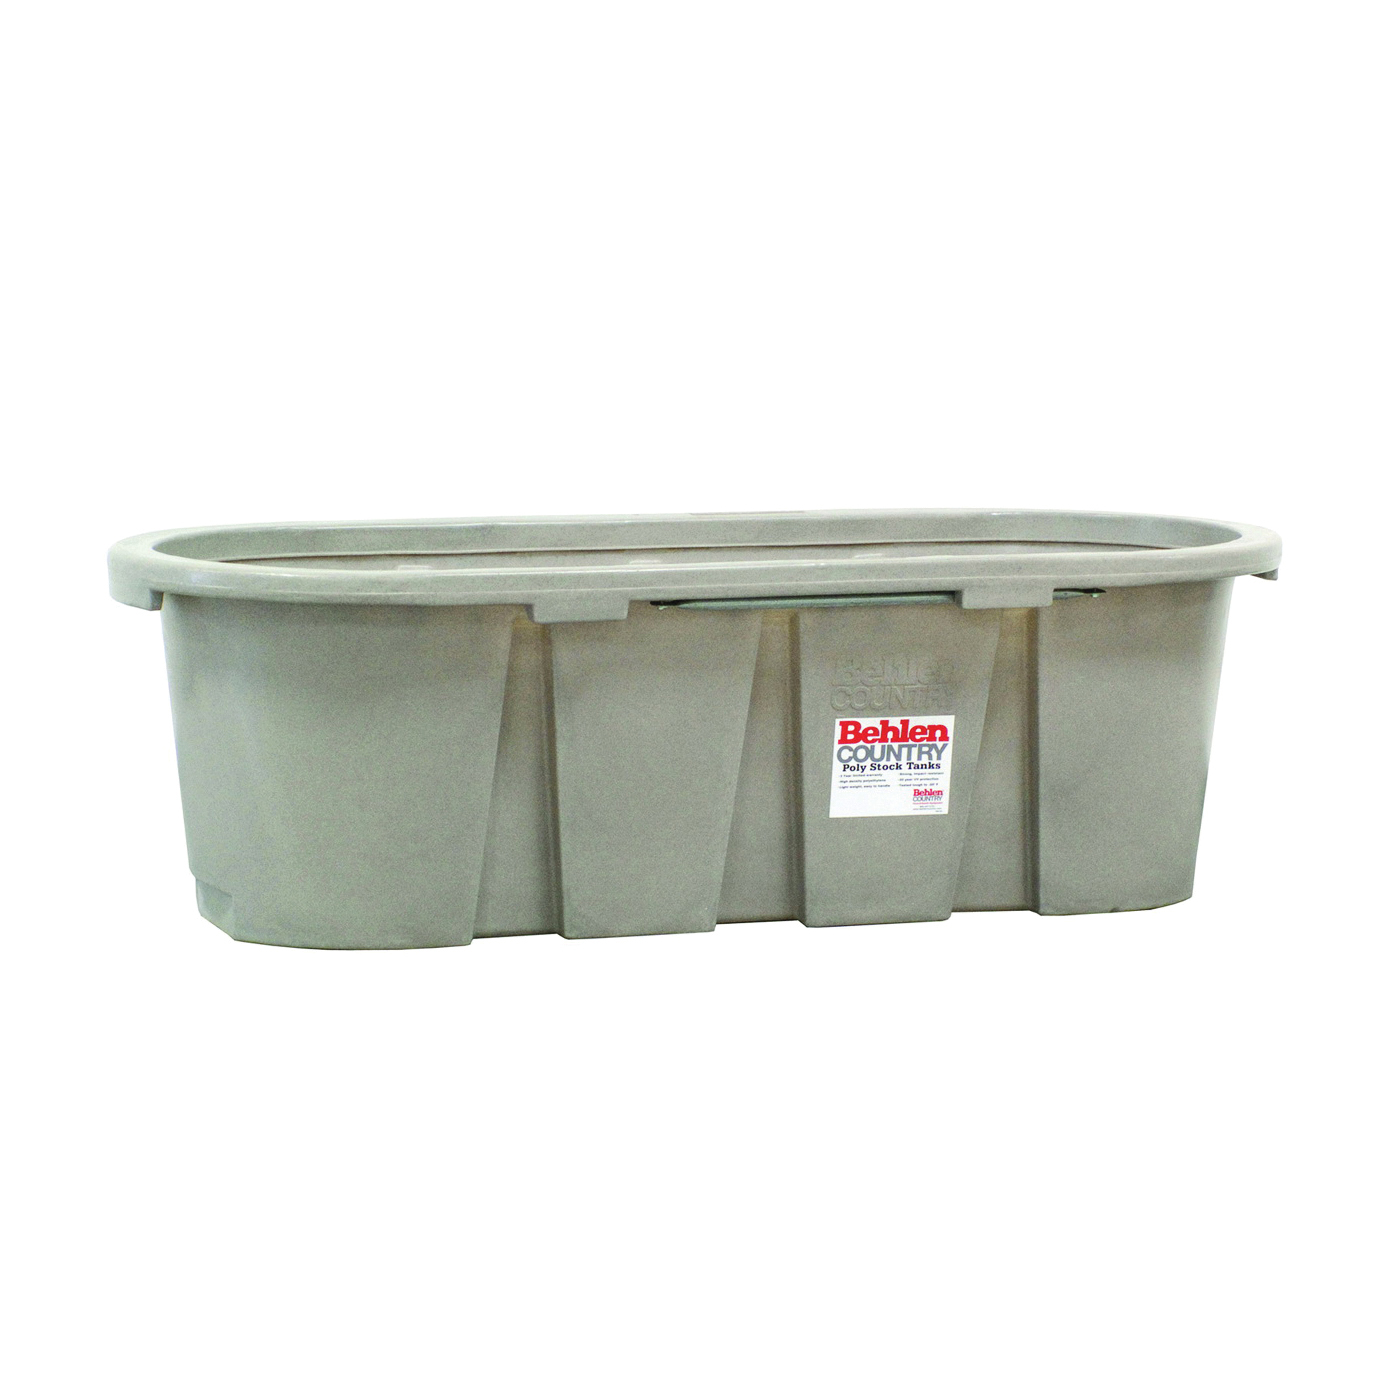 Picture of Behlen Country 52112027GT Farm Stock Tank, Round, 150 gal Capacity, Polyurethane, Granite Tan